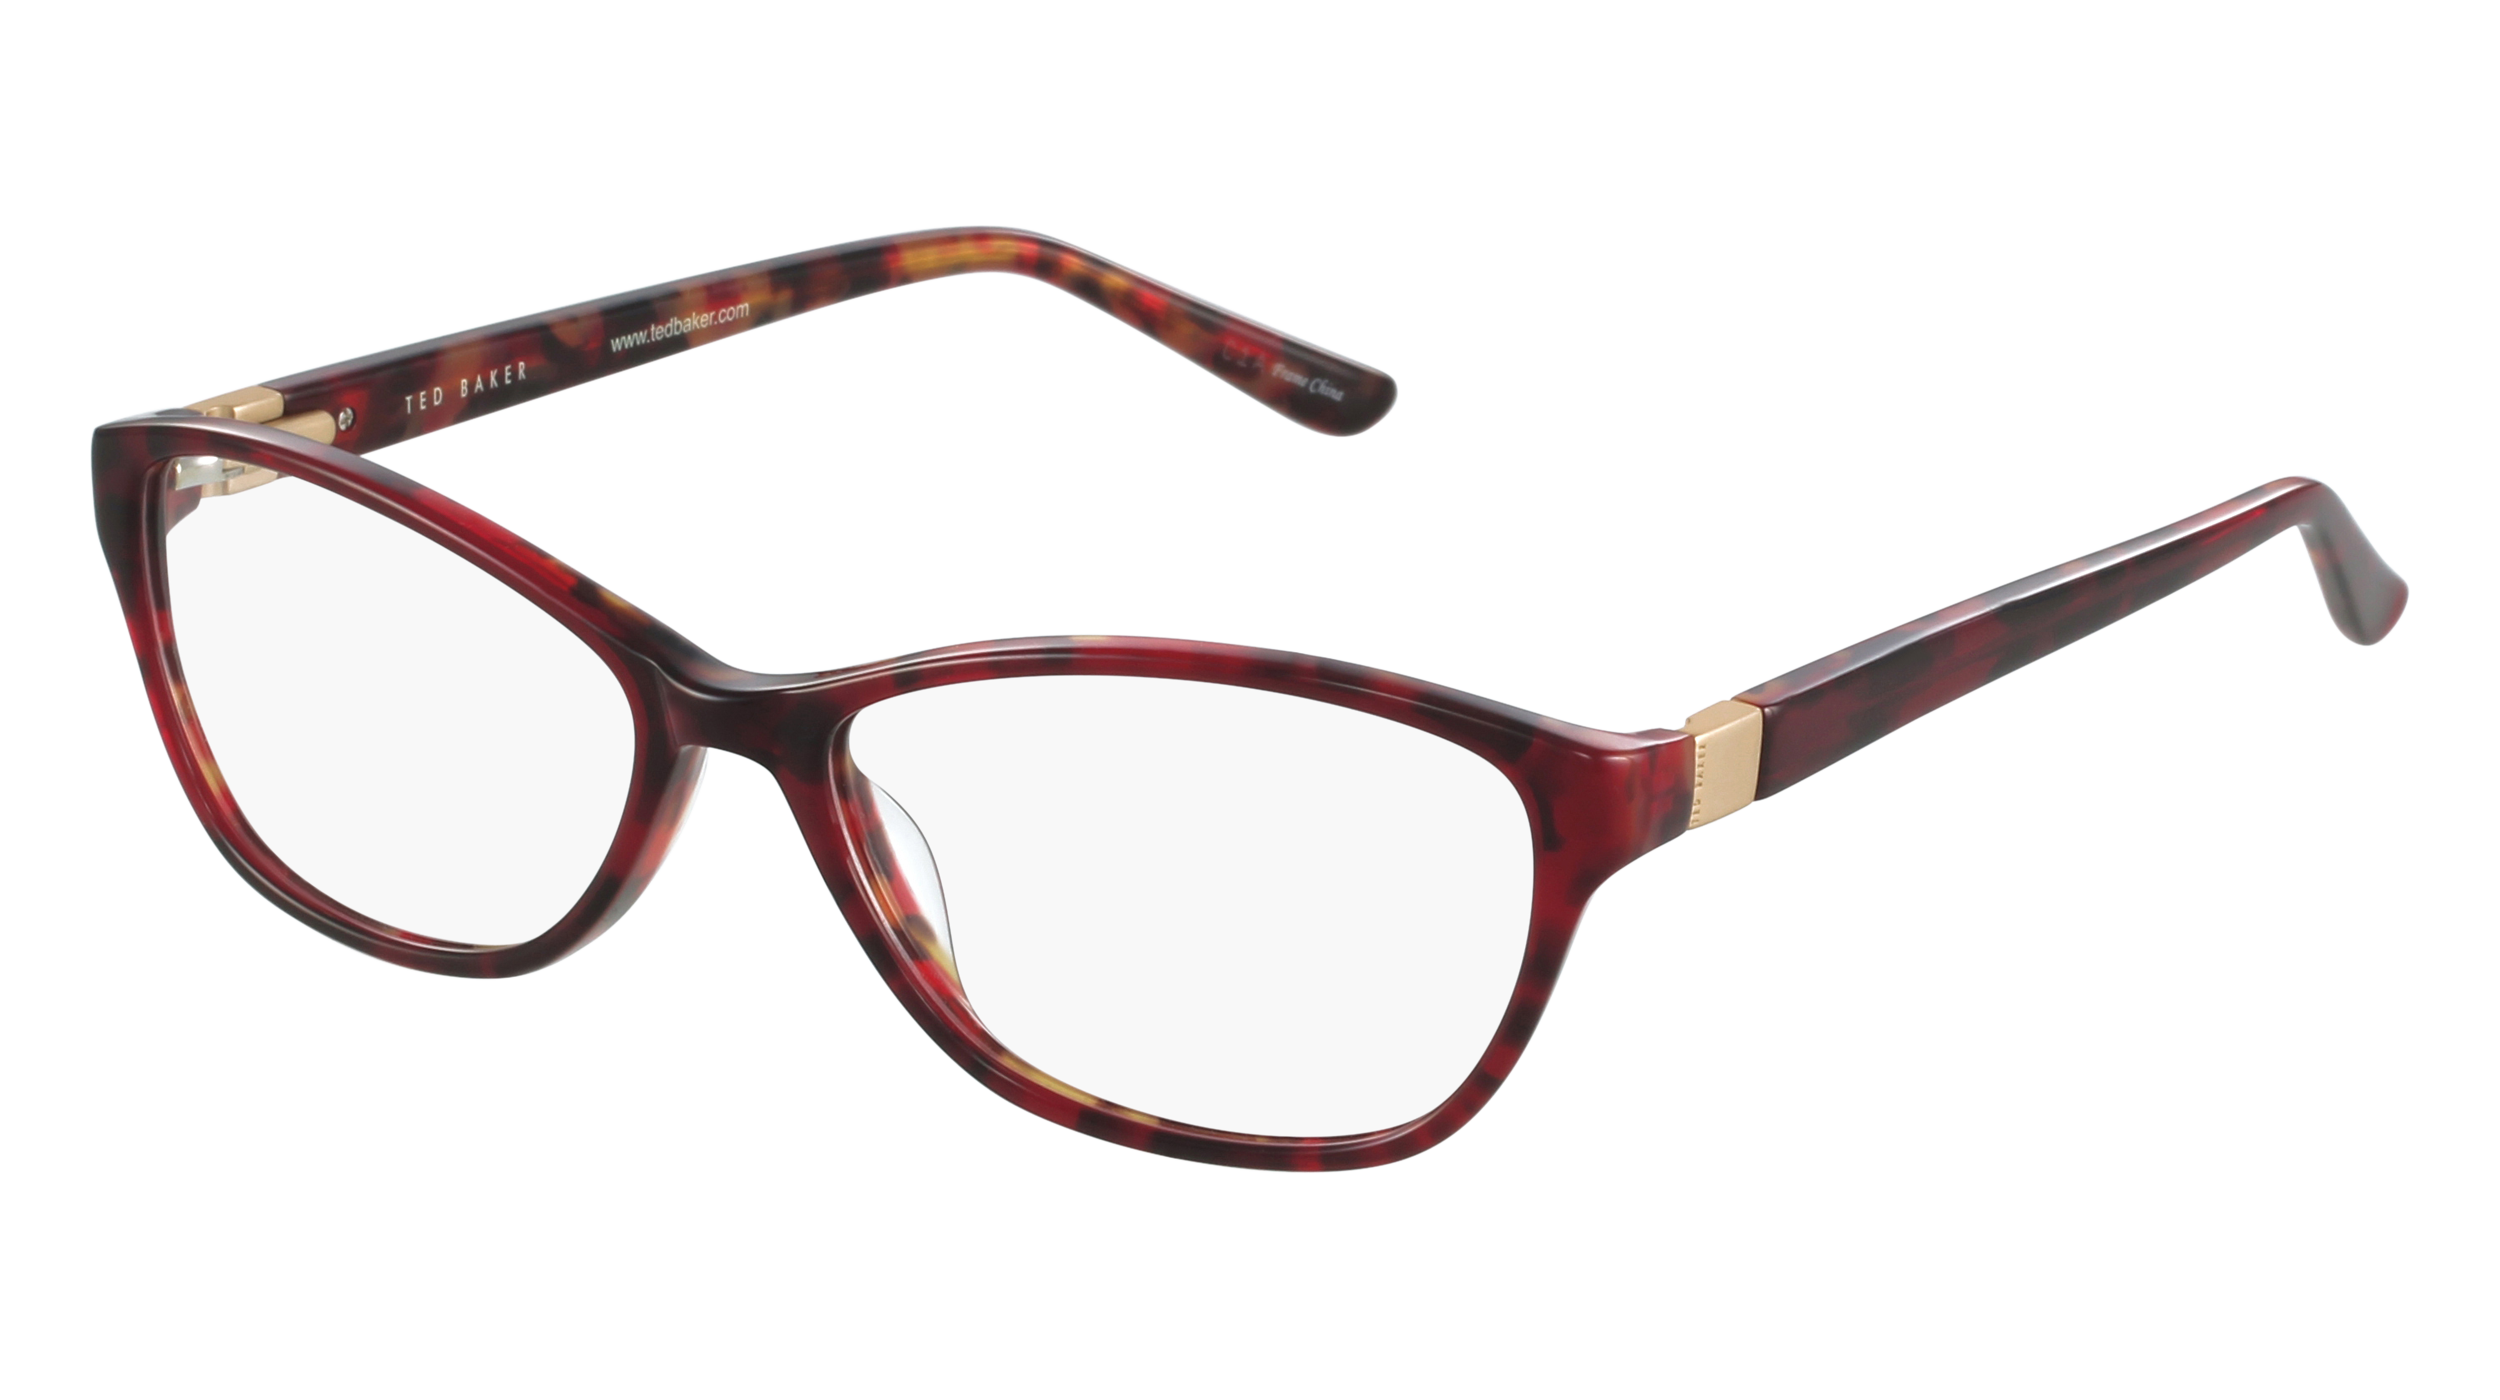 Ted Baker B722-O-RED-54-15-135